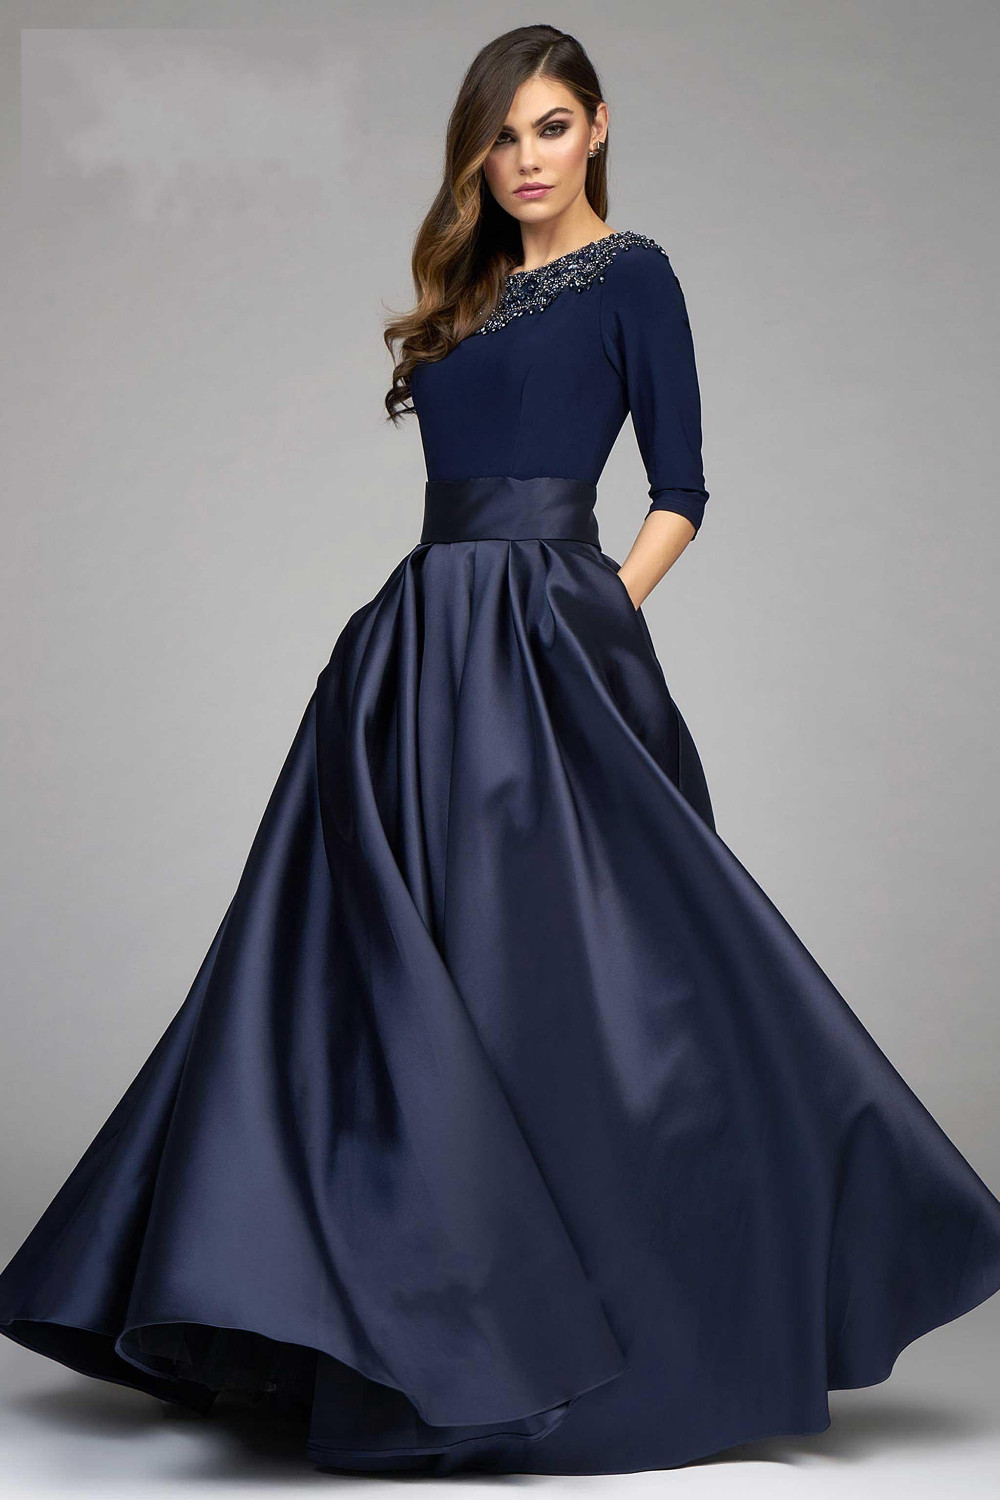 High Quality Navy Blue Formal Skirt-Buy Cheap Navy Blue Formal ...